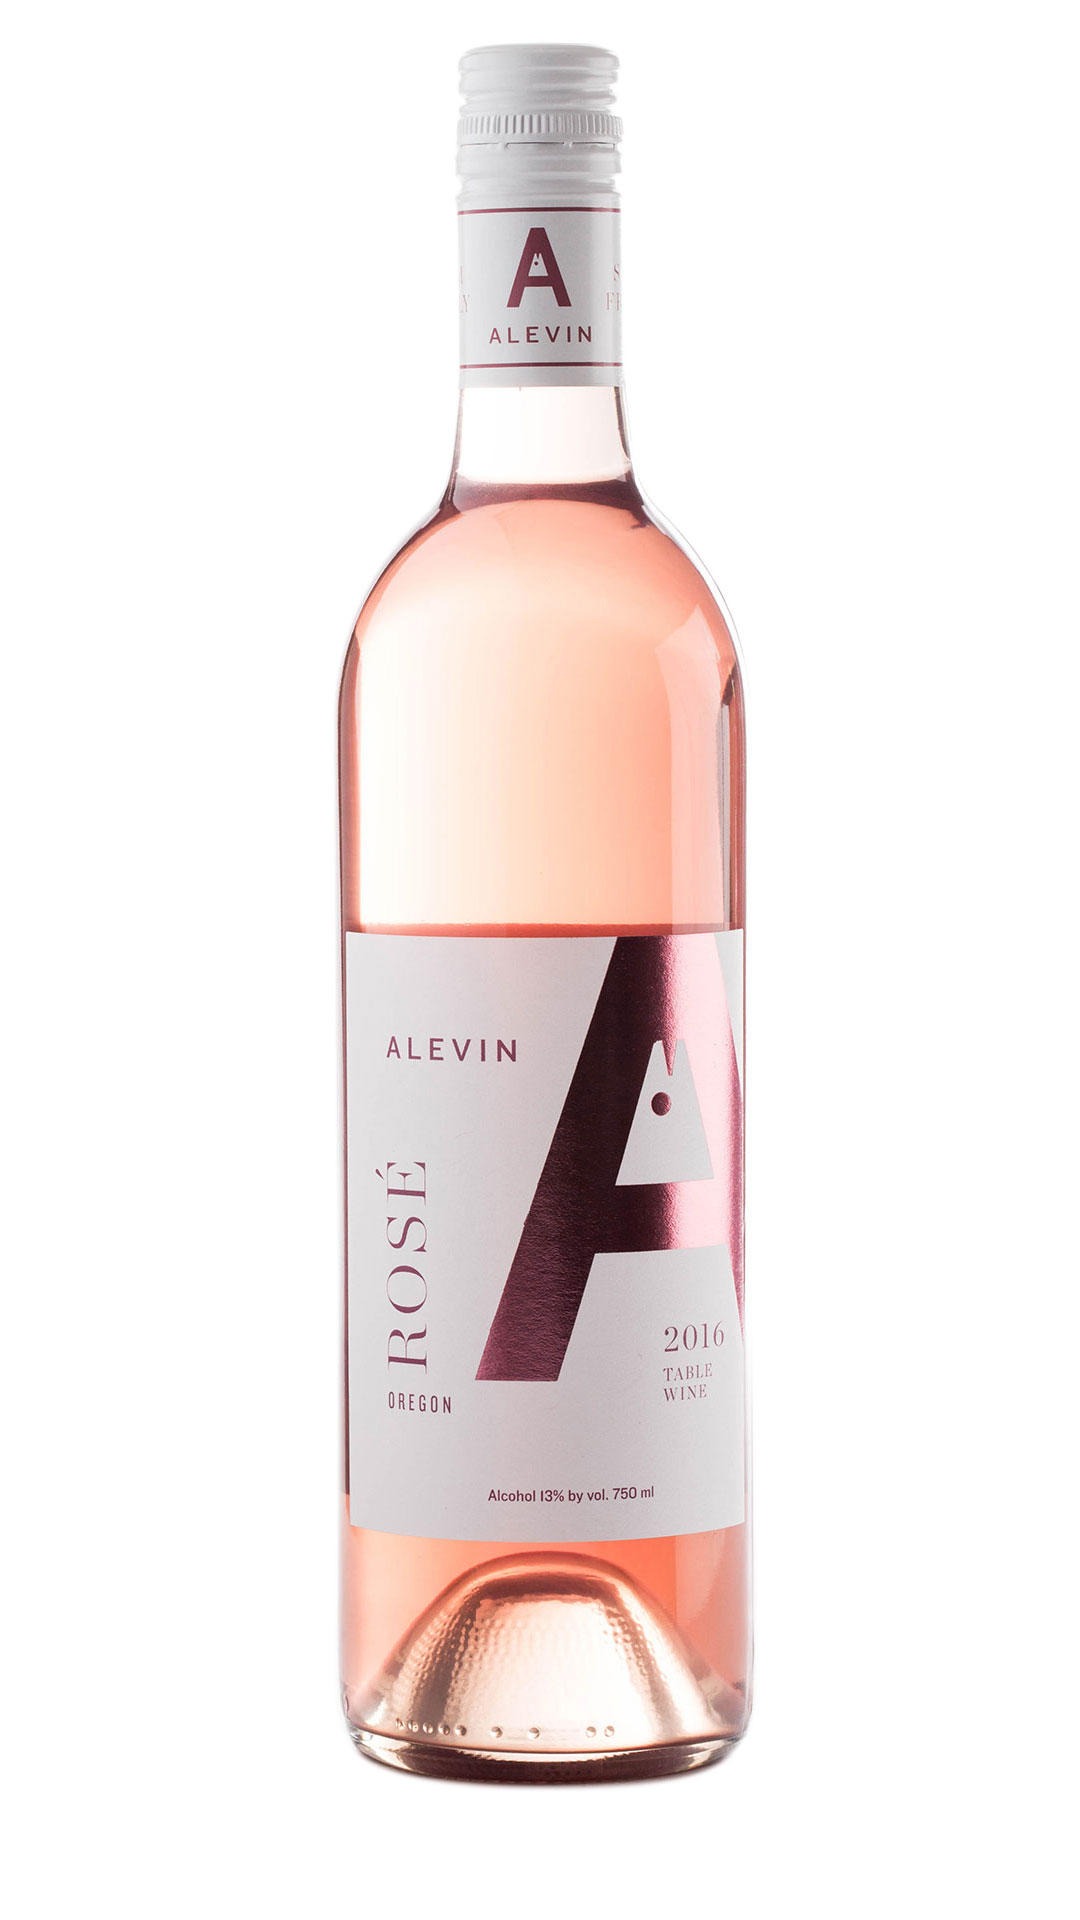 2016 Rosé - Our 2016 Rosé is crisp and refreshing, with bright berry aromas and a floral finish.